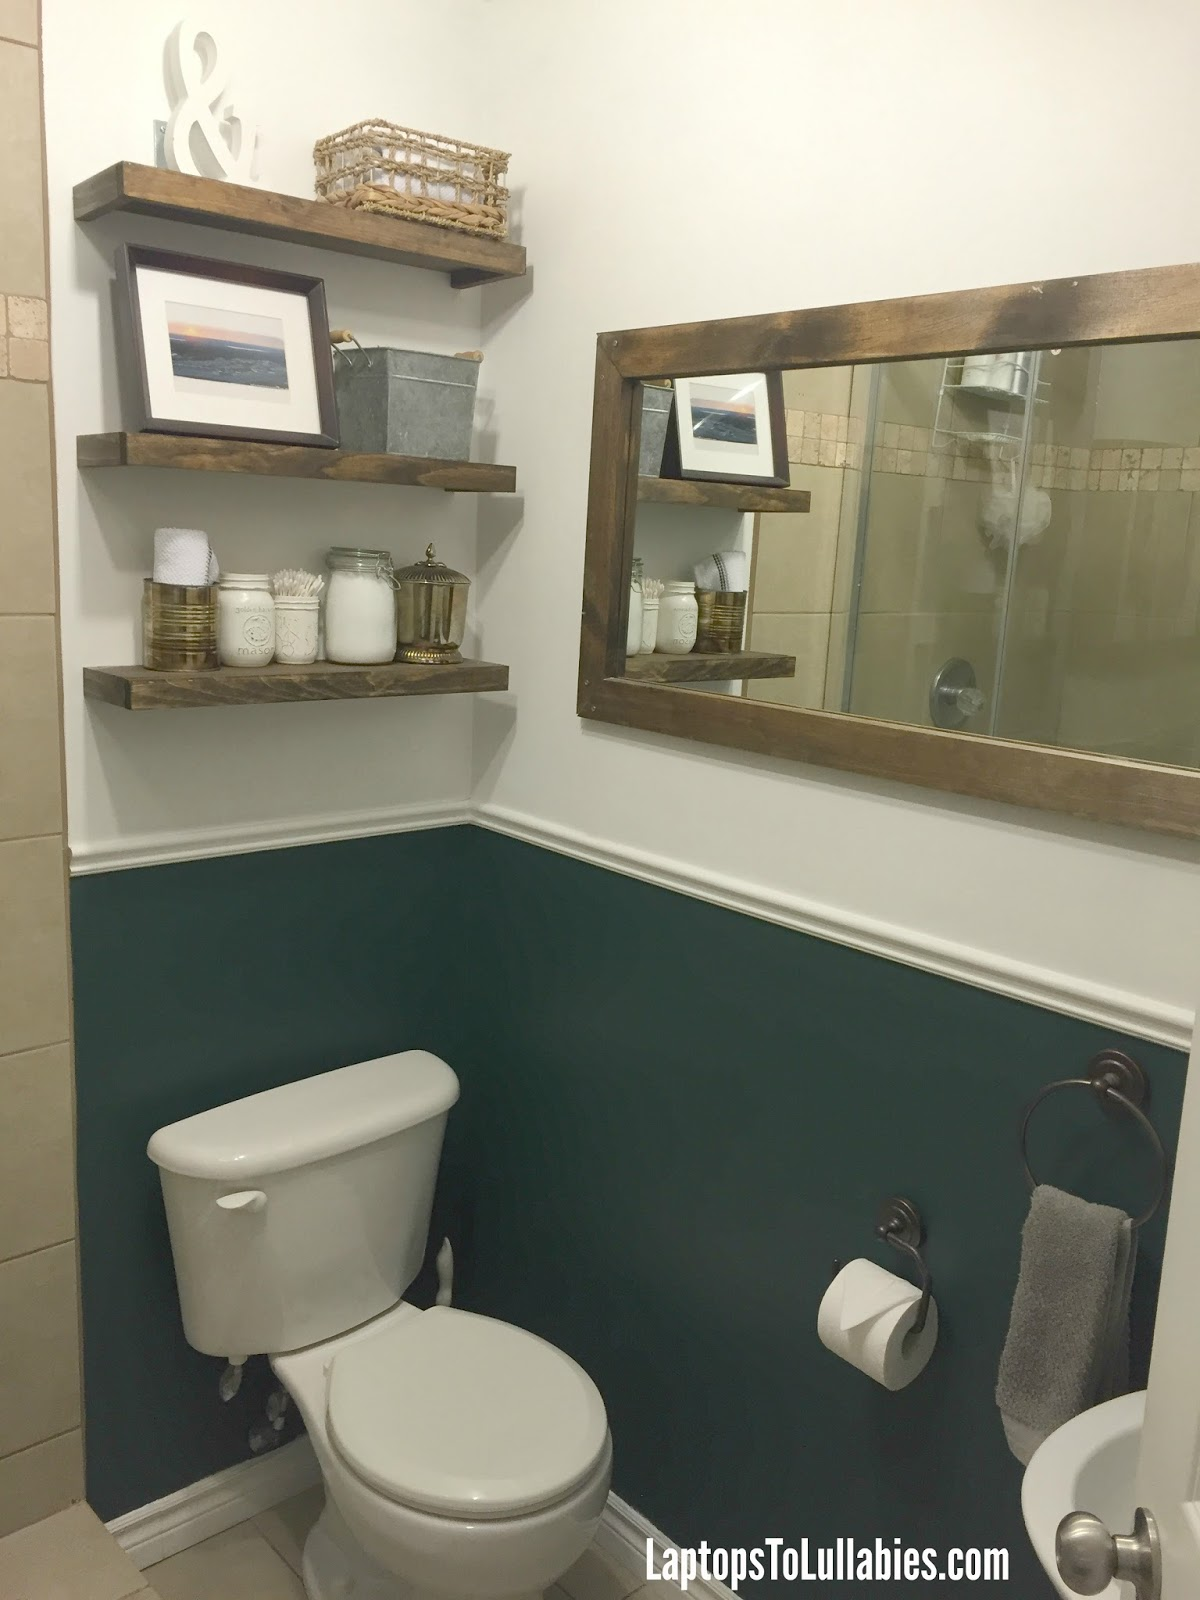 Mind Continue Reading My Weekly Diy My Handmade Home Bathroom Makeover Inspired By Chris Loves Julia Chris Loves Julia Carpet Chris Loves Julia Basement houzz 01 Chris Loves Julia